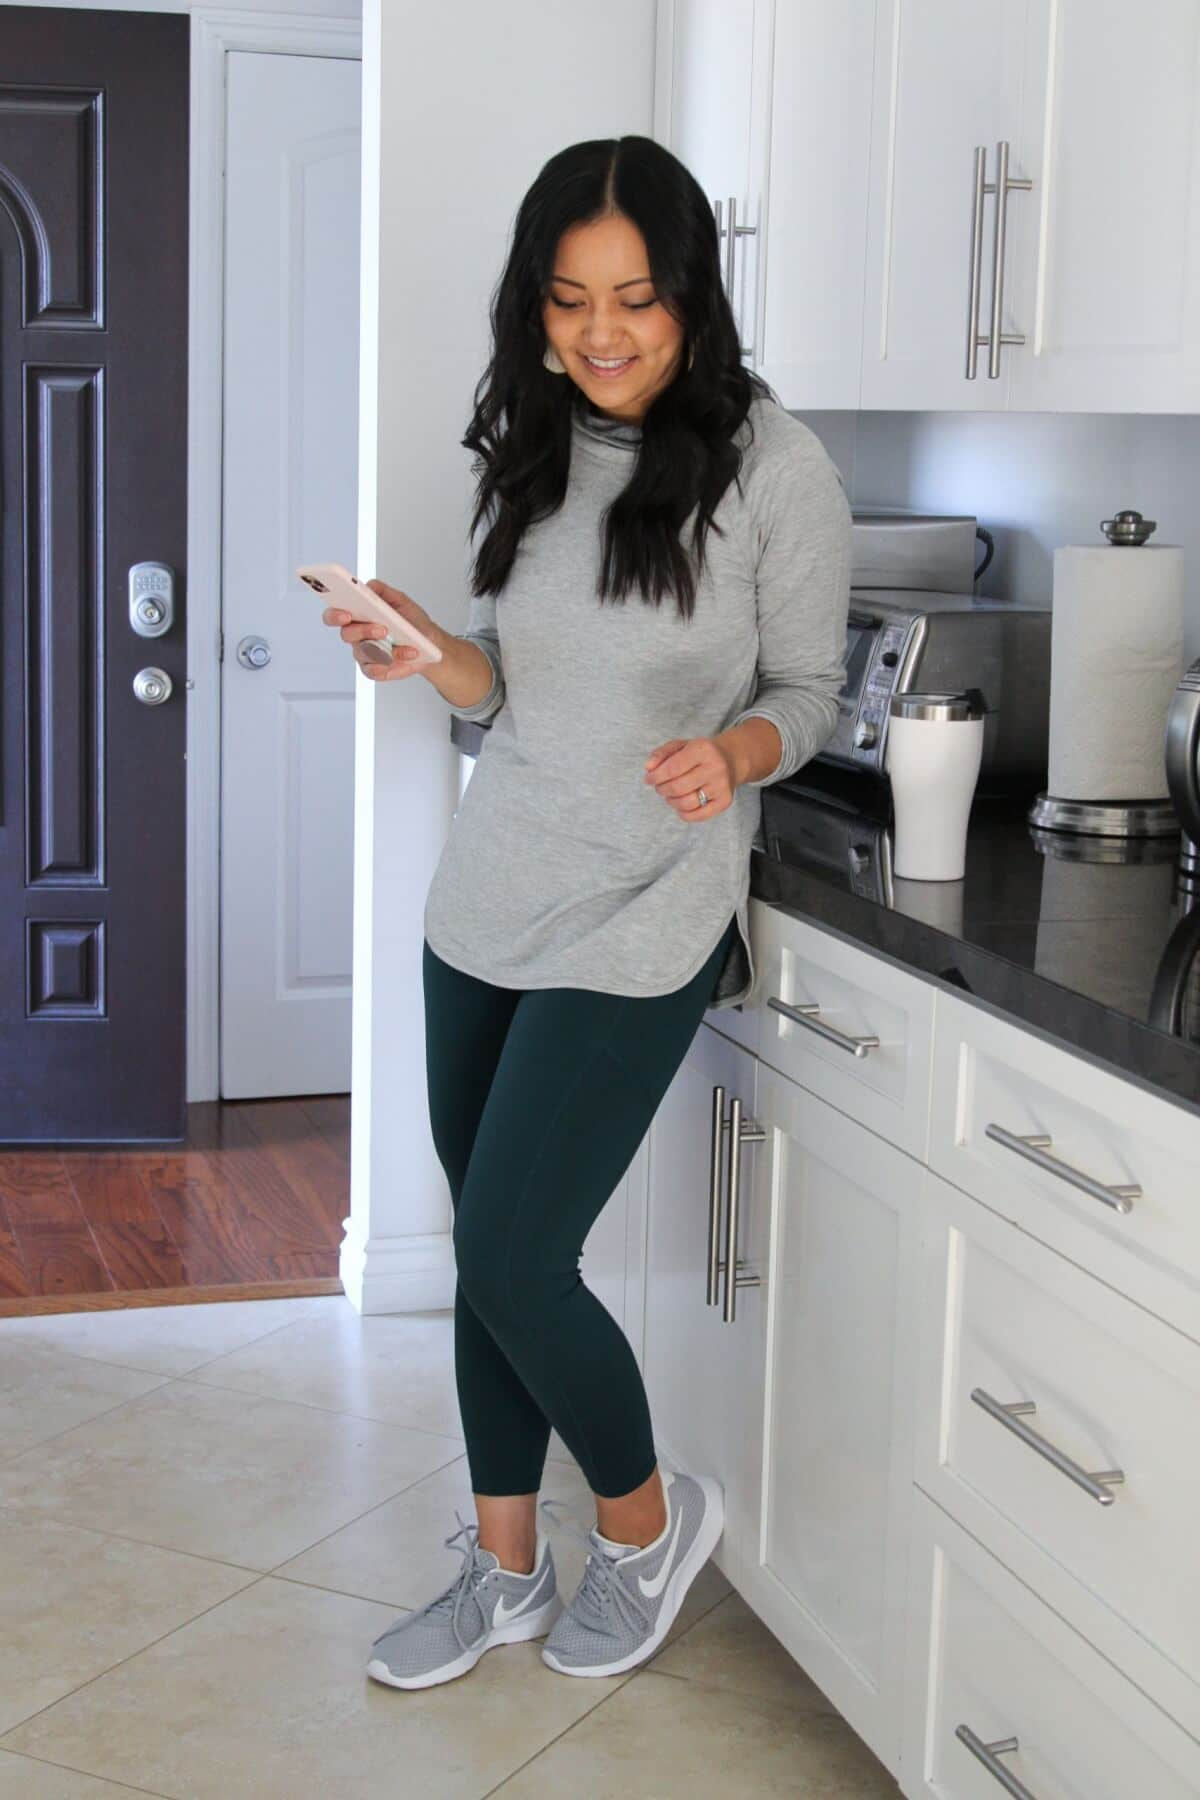 workout outfit with green leggings + grey tunic + grey sneakers